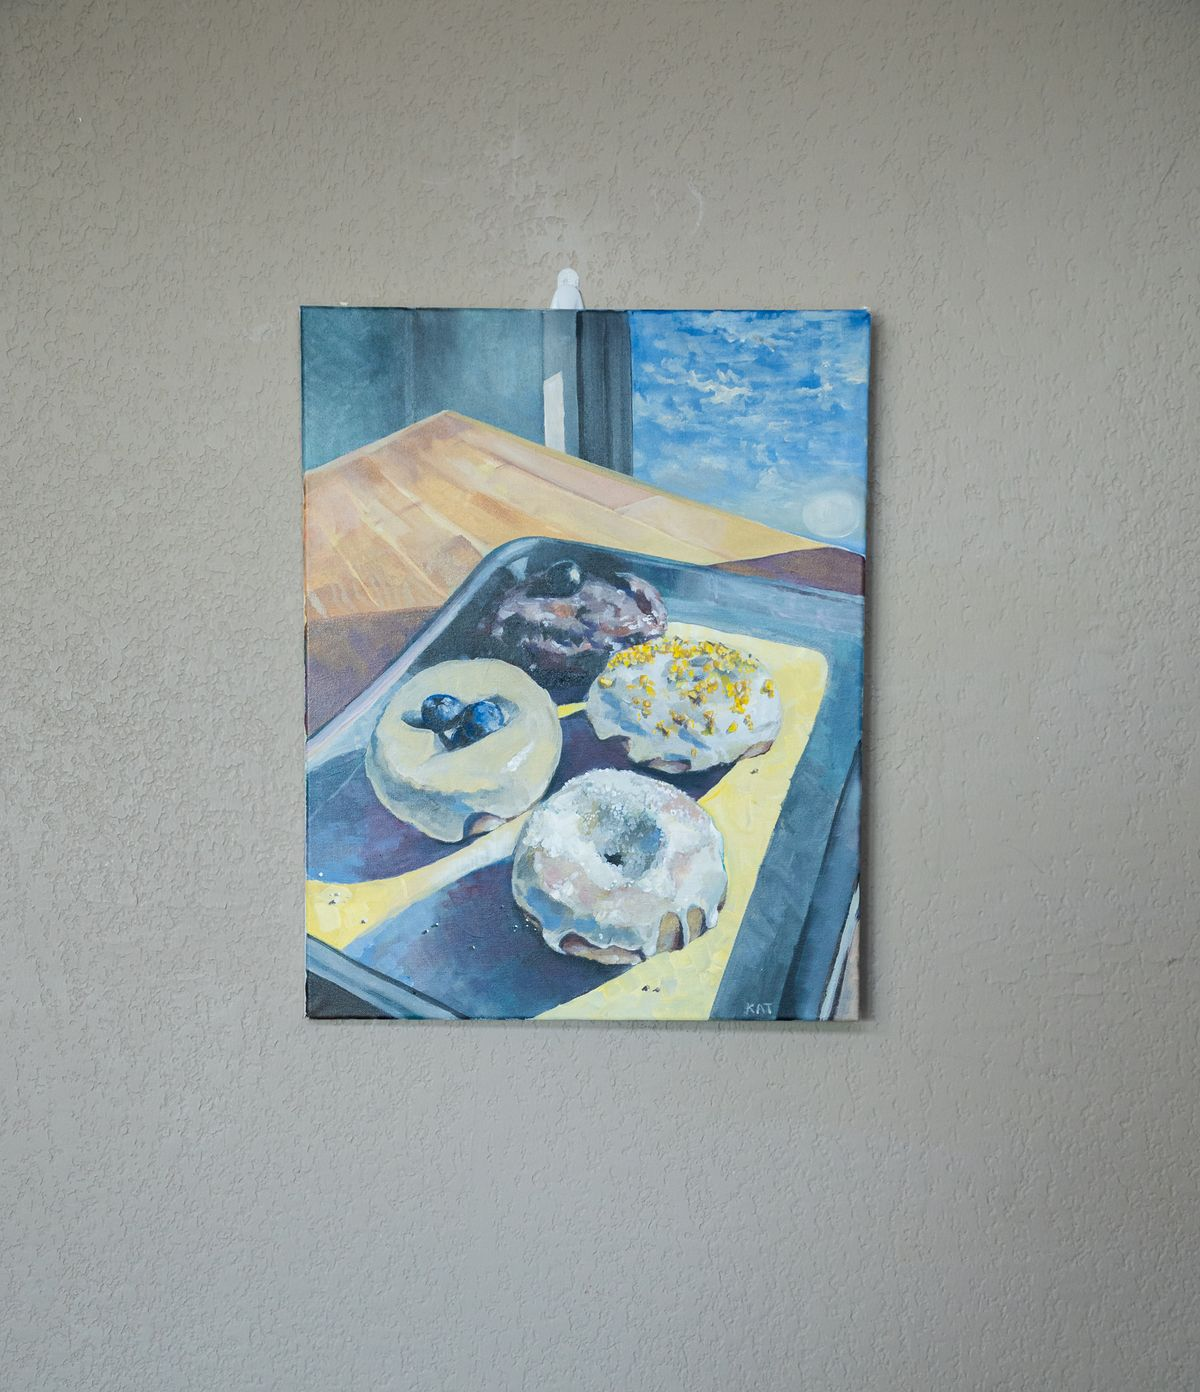 2_Katrina_Cervantes_Window Seat at Bougie's_Austin Art_Austin Artist_Austin Gifts.jpg